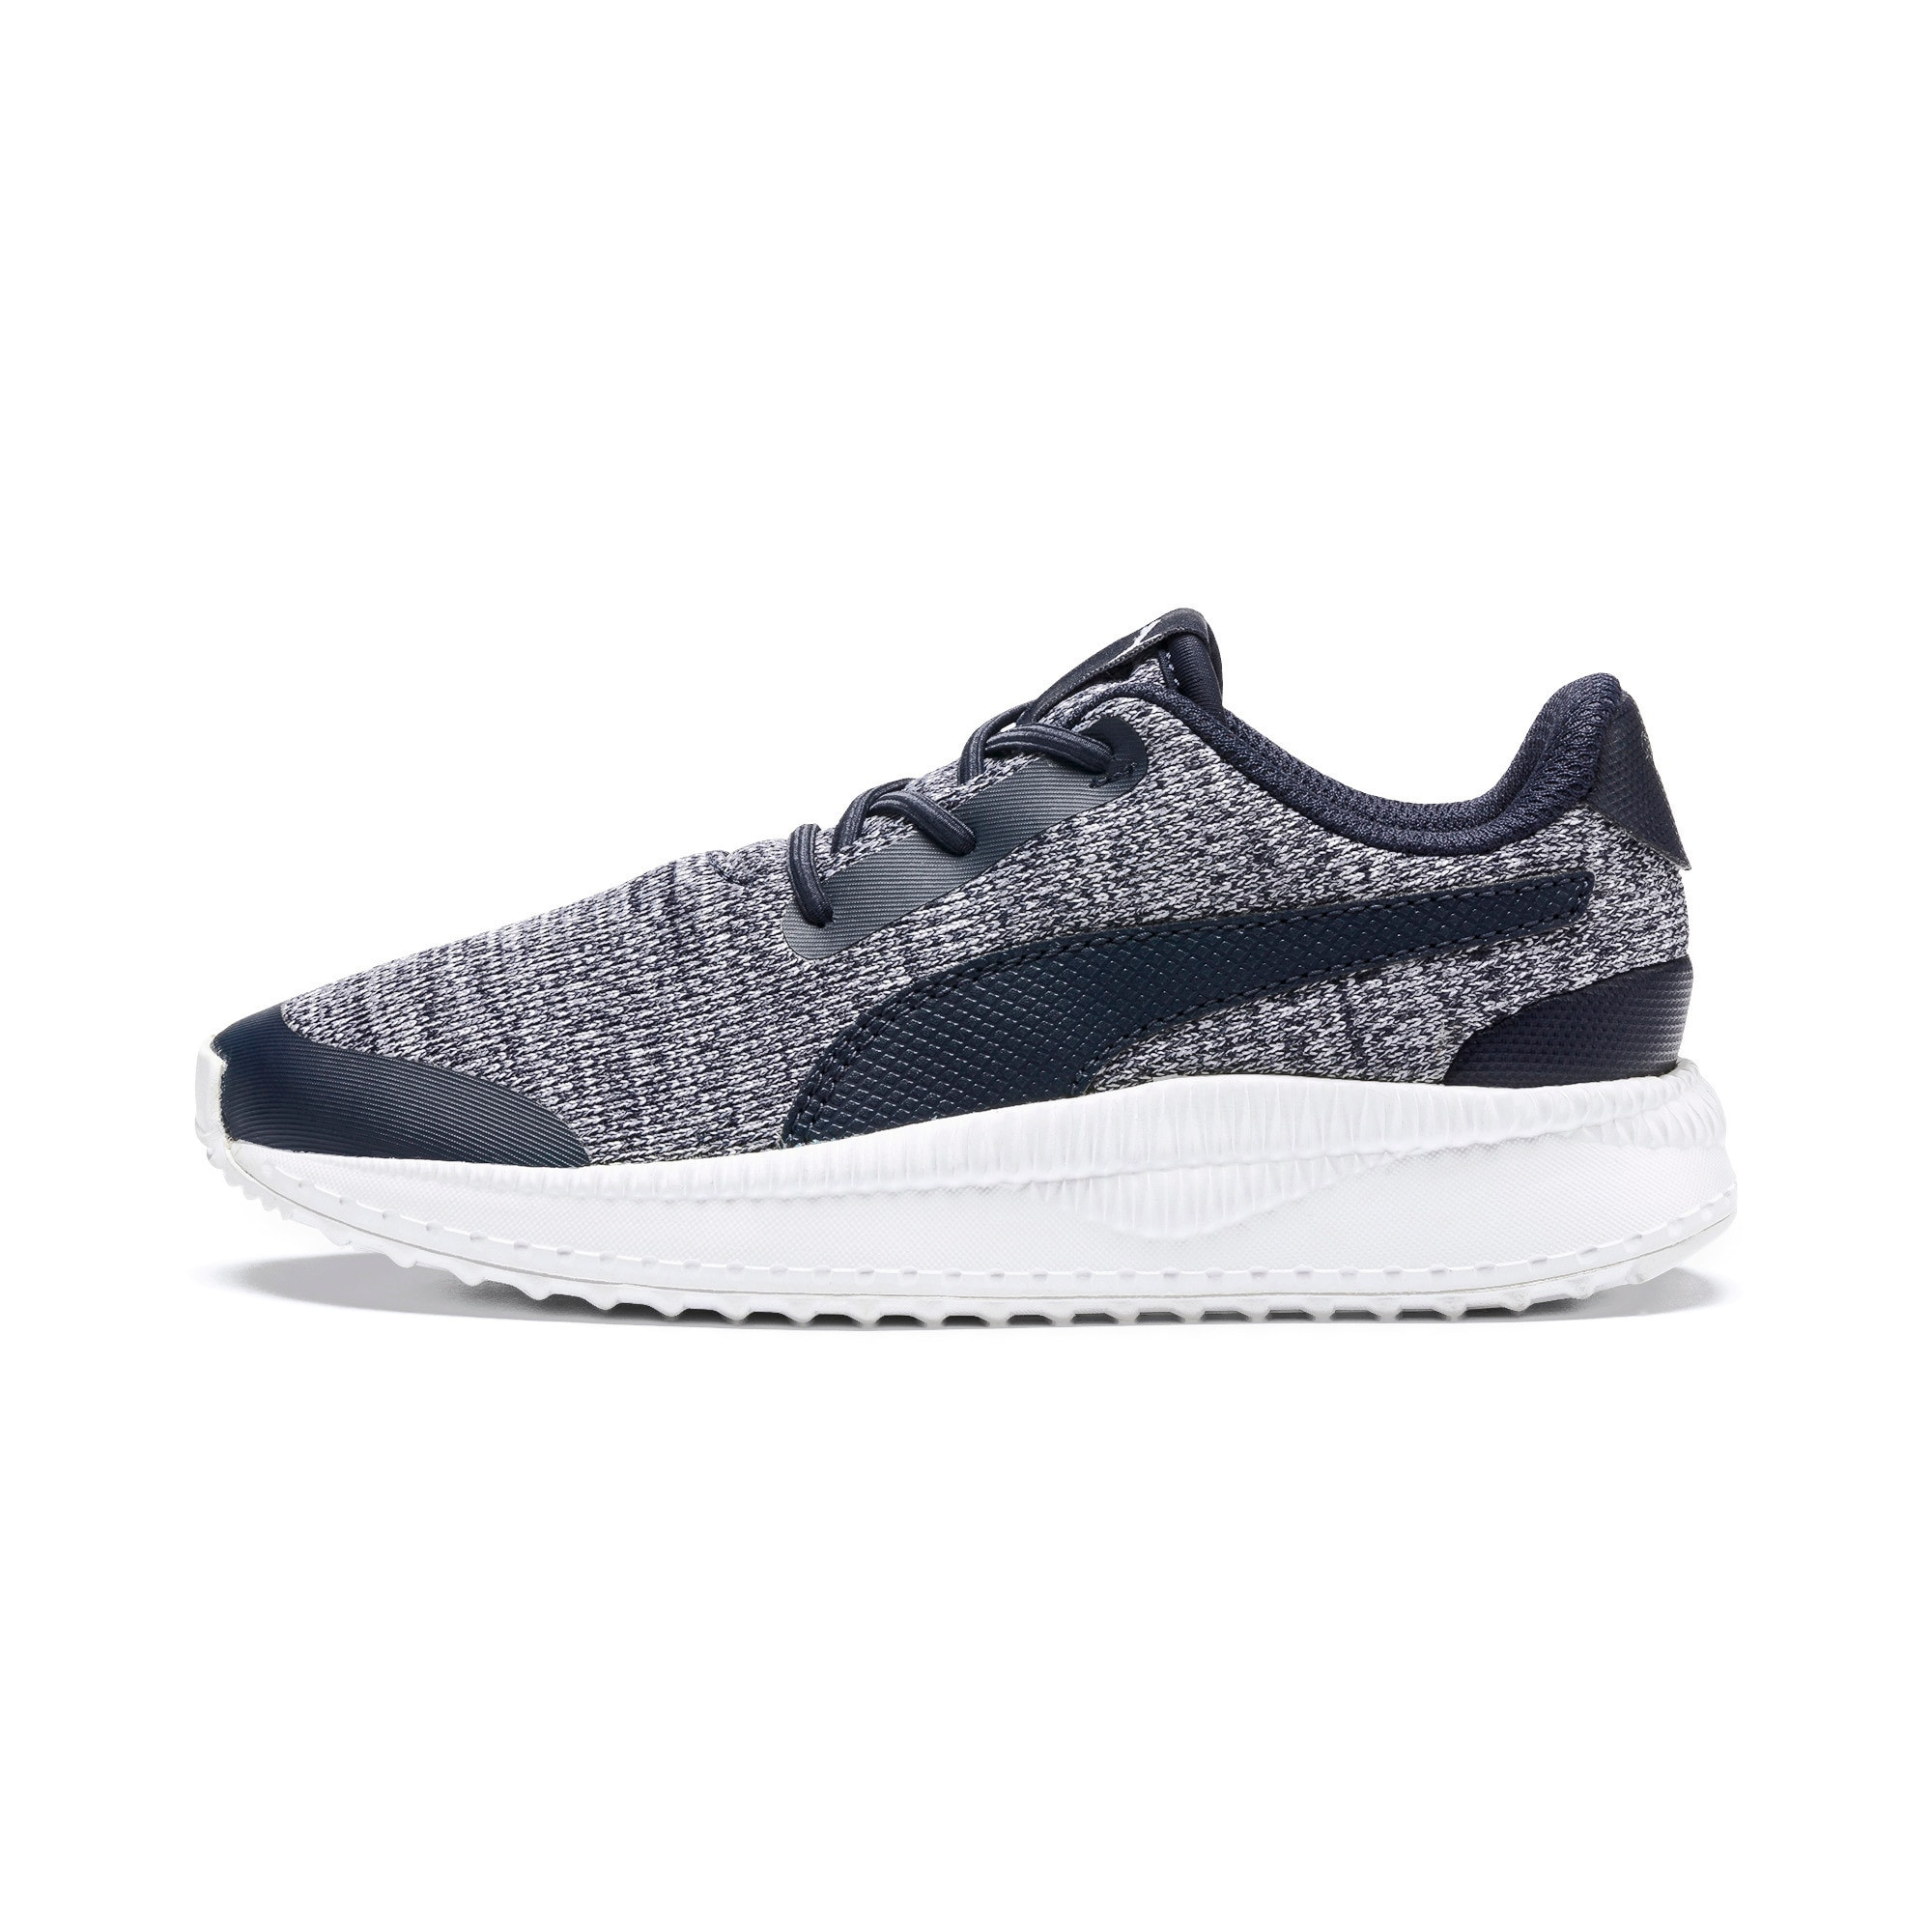 Thumbnail 1 of Pacer Next FS Knit AC Kids' Trainers, Peacoat-Puma White, medium